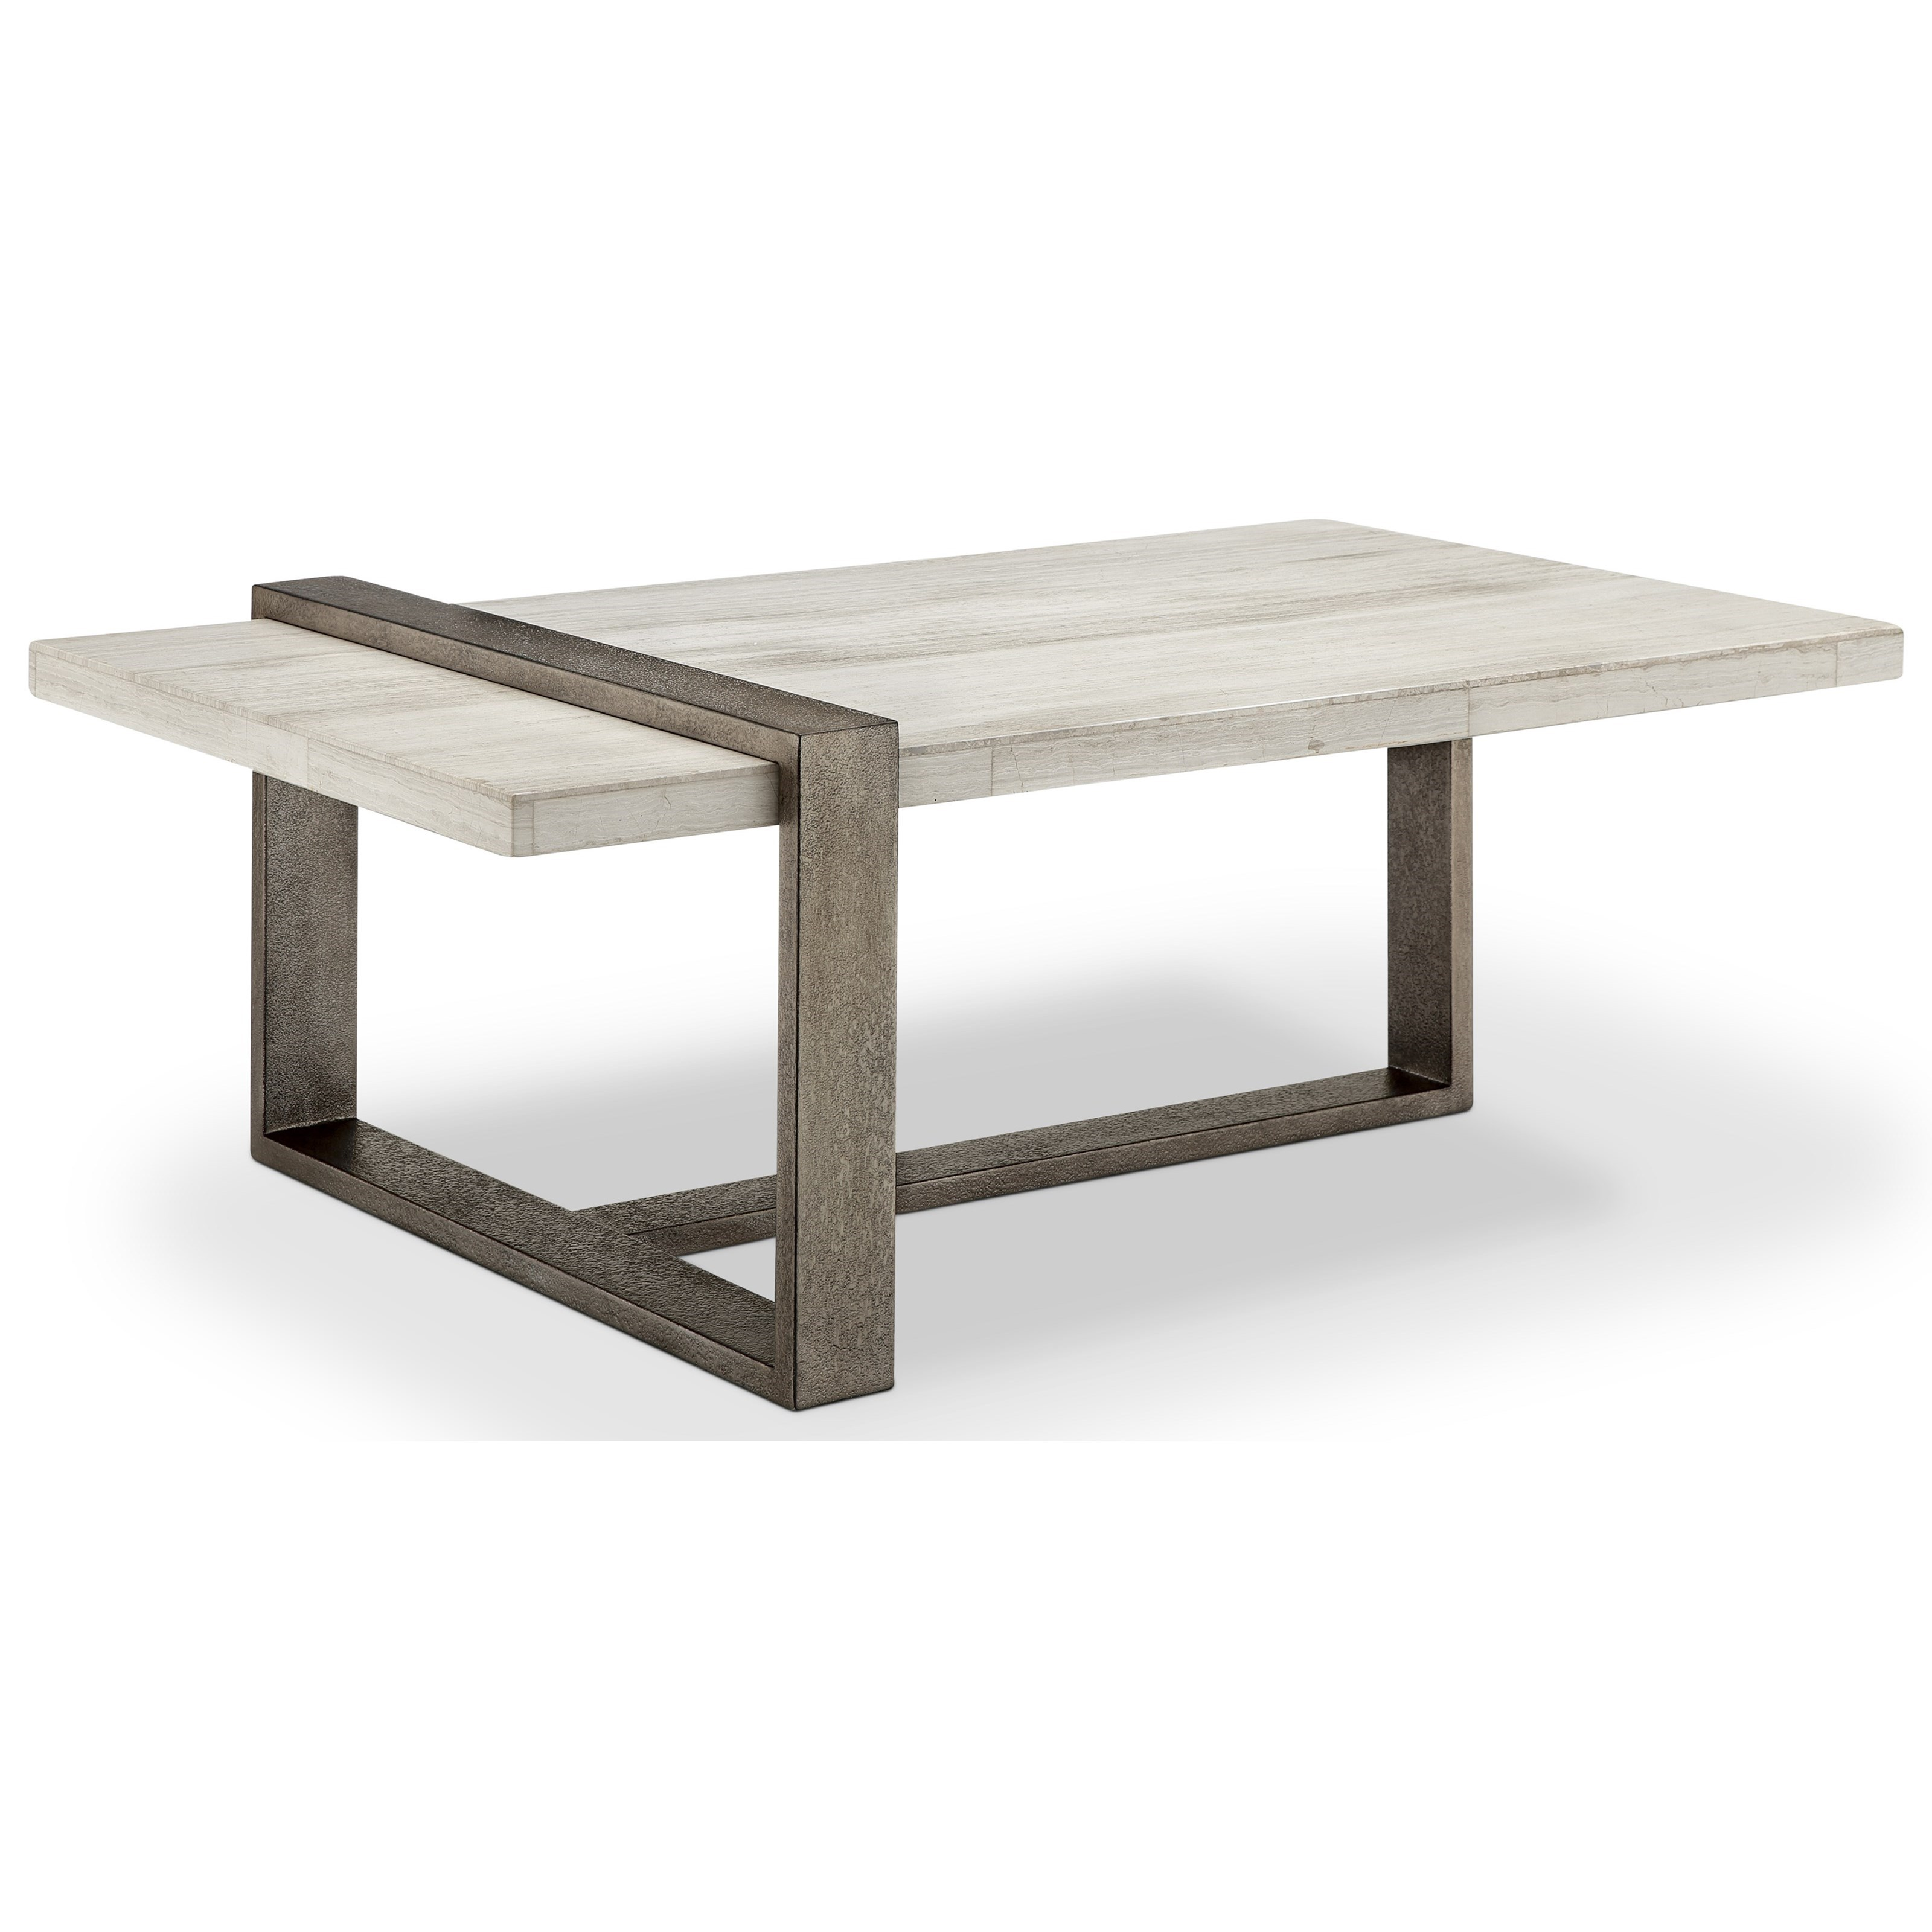 Wiltshire MH Rectangular Cocktail Table by Magnussen Home at Value City Furniture